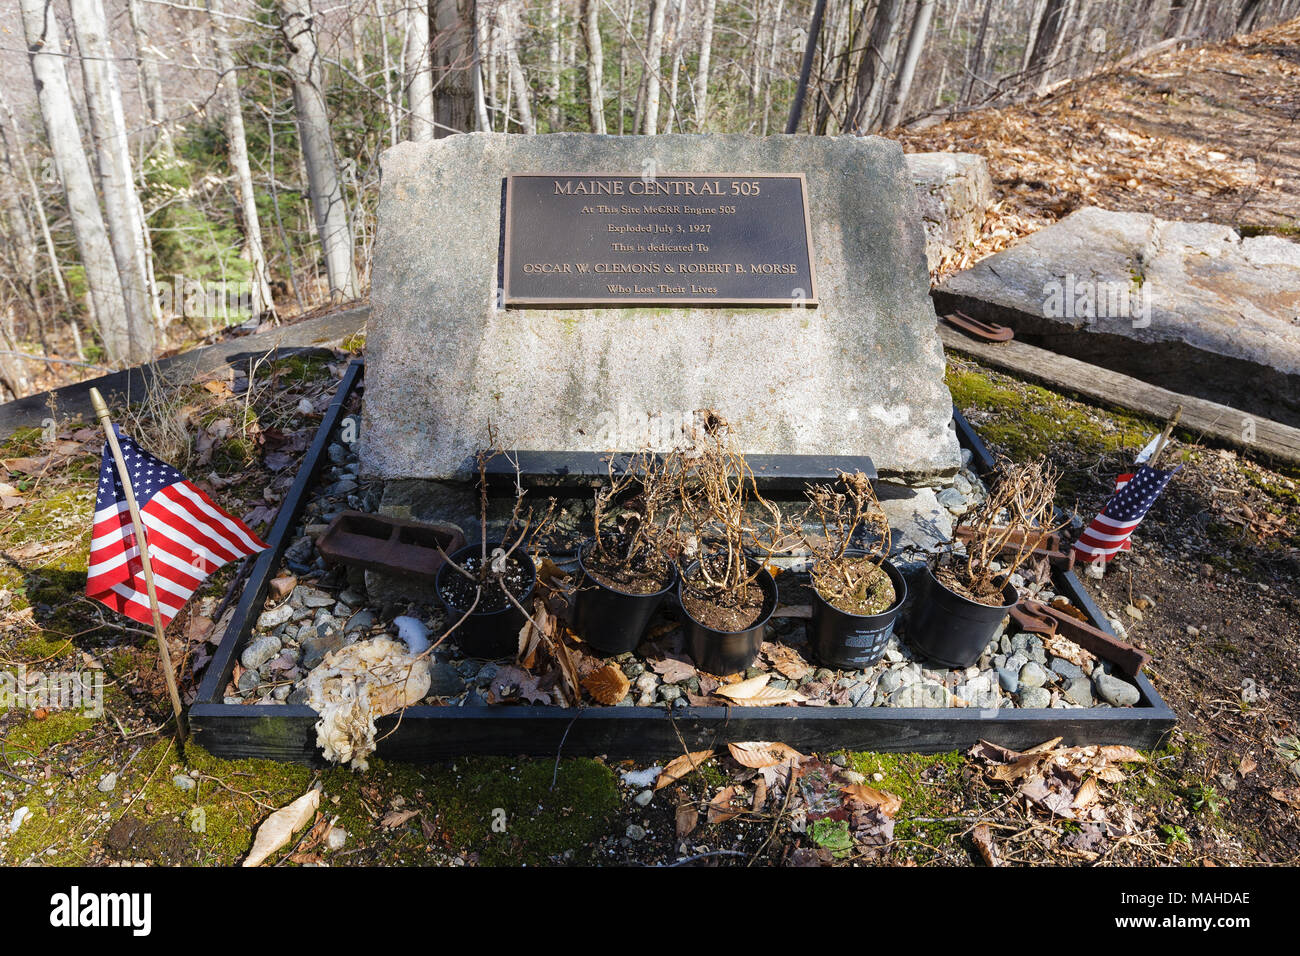 Crash site of the Maine Central Railroad Engine 505 on July 3, 1927 along the Maine Central Railroad in Crawford Notch of the New Hampshire. - Stock Image